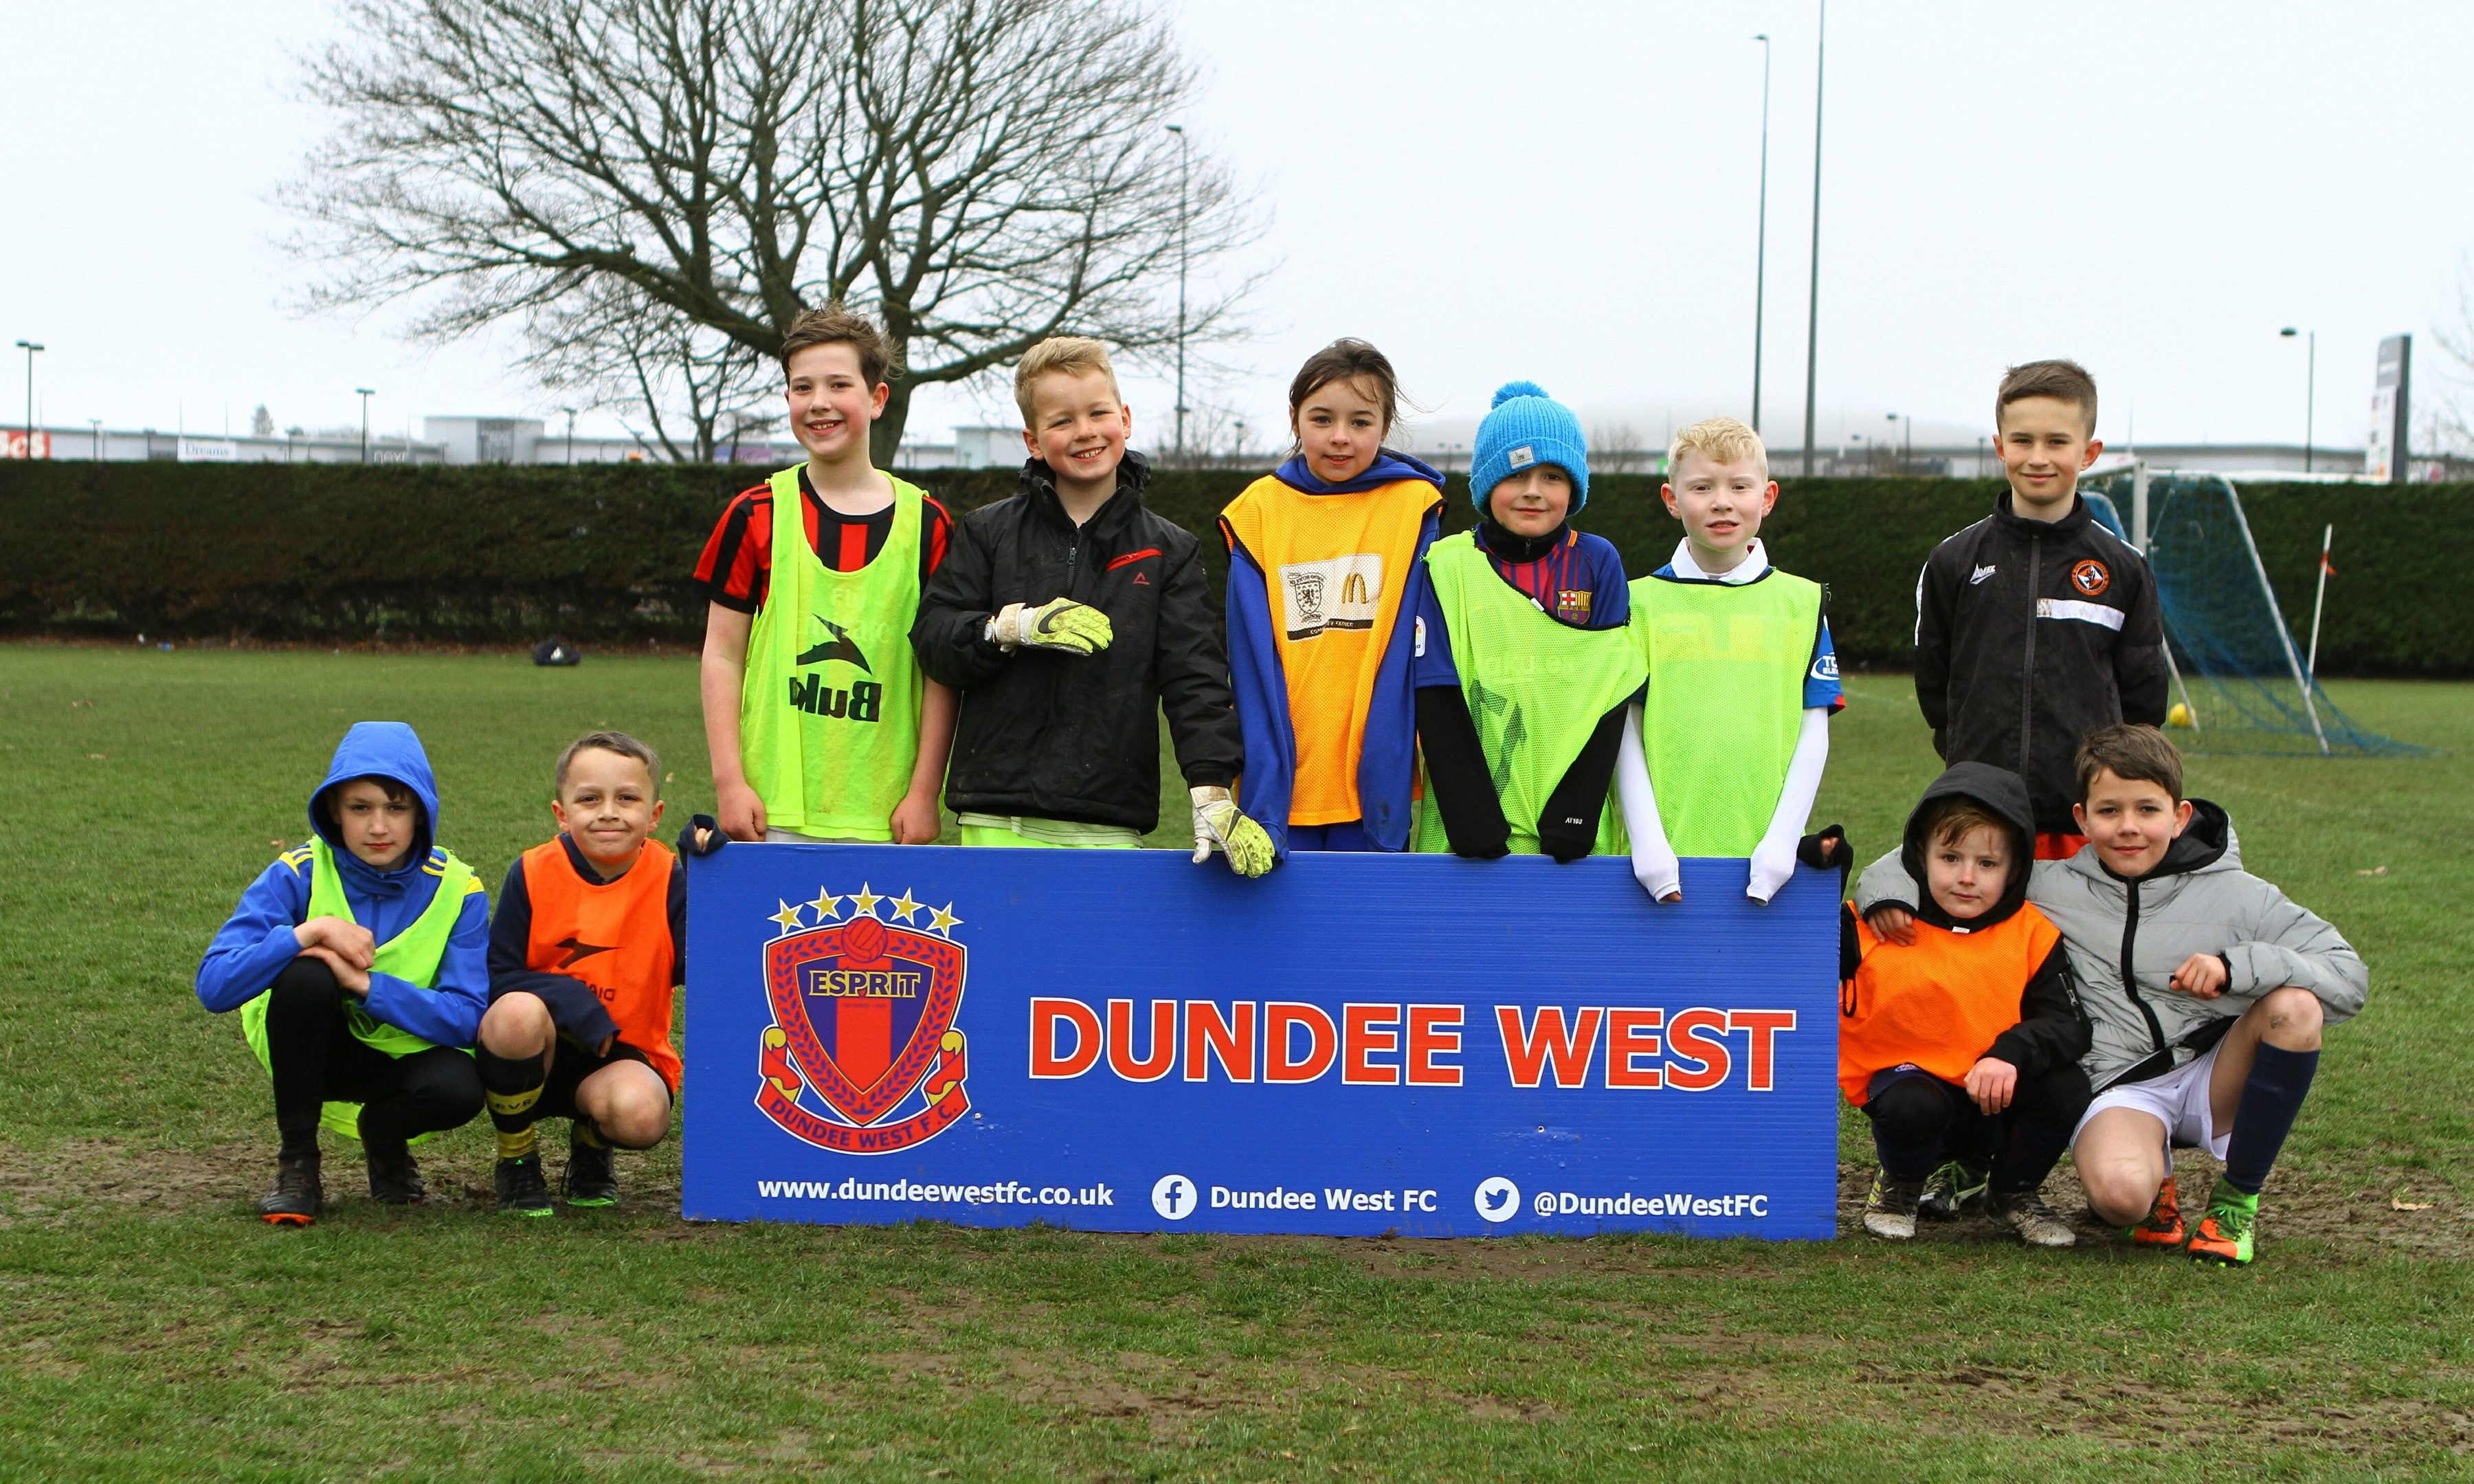 The 8 to 12 year old group pose for the camera, at the Dundee West FC Easter Holiday Football Camp, at Charlotte Park in Dundee.